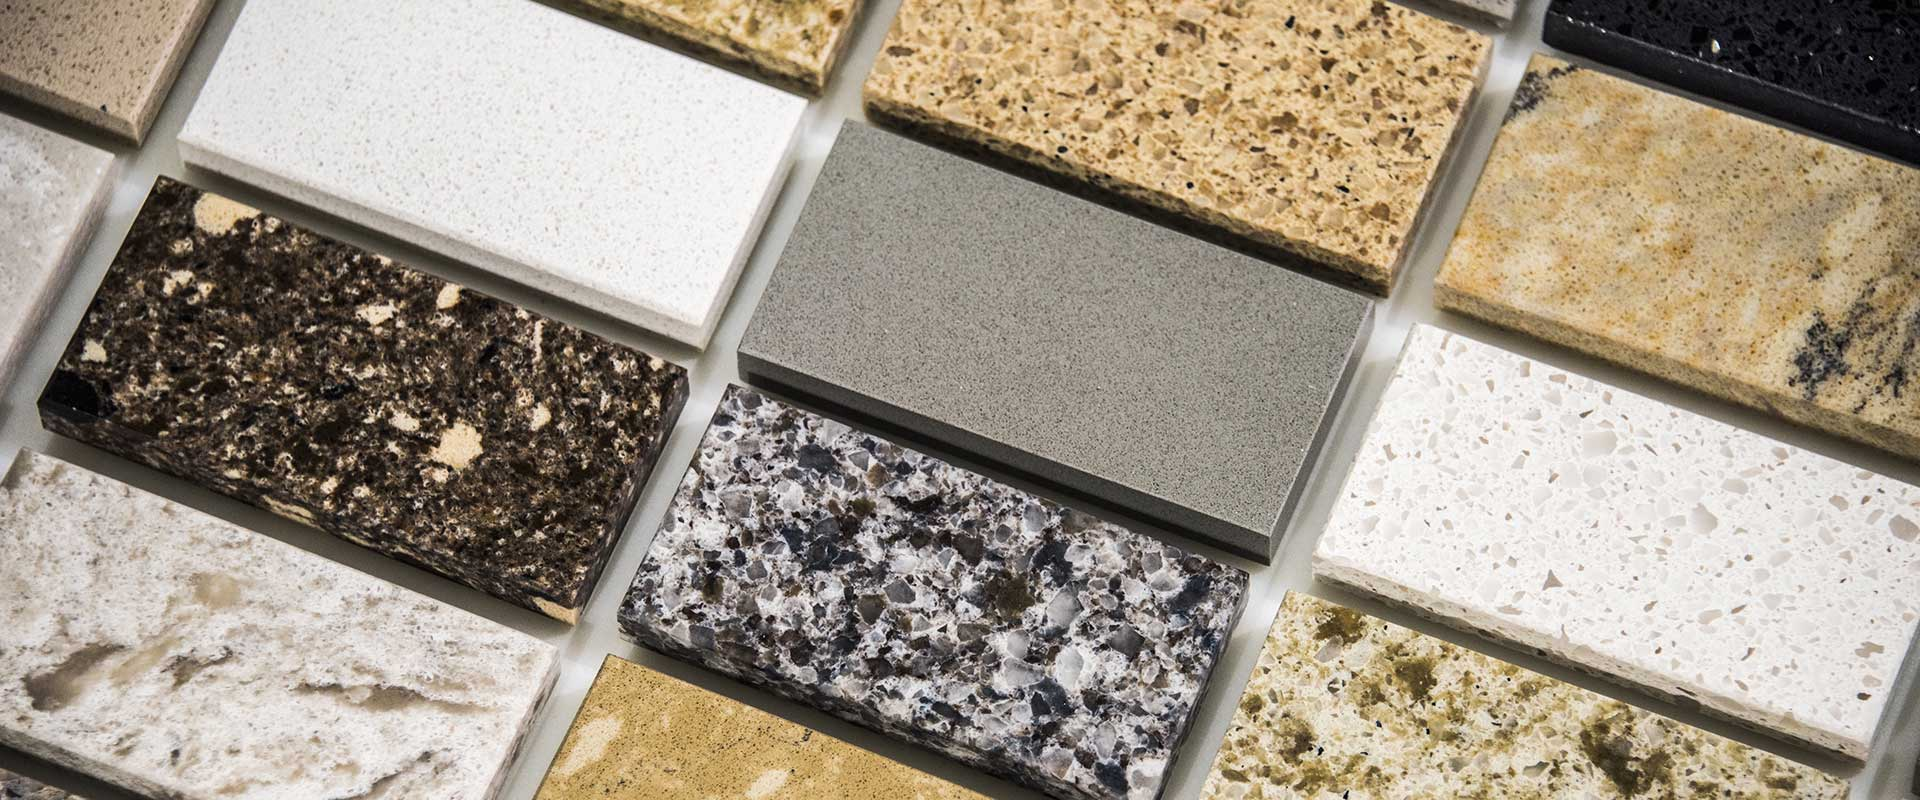 Granite Trends 2020 | Turkish Marble Company